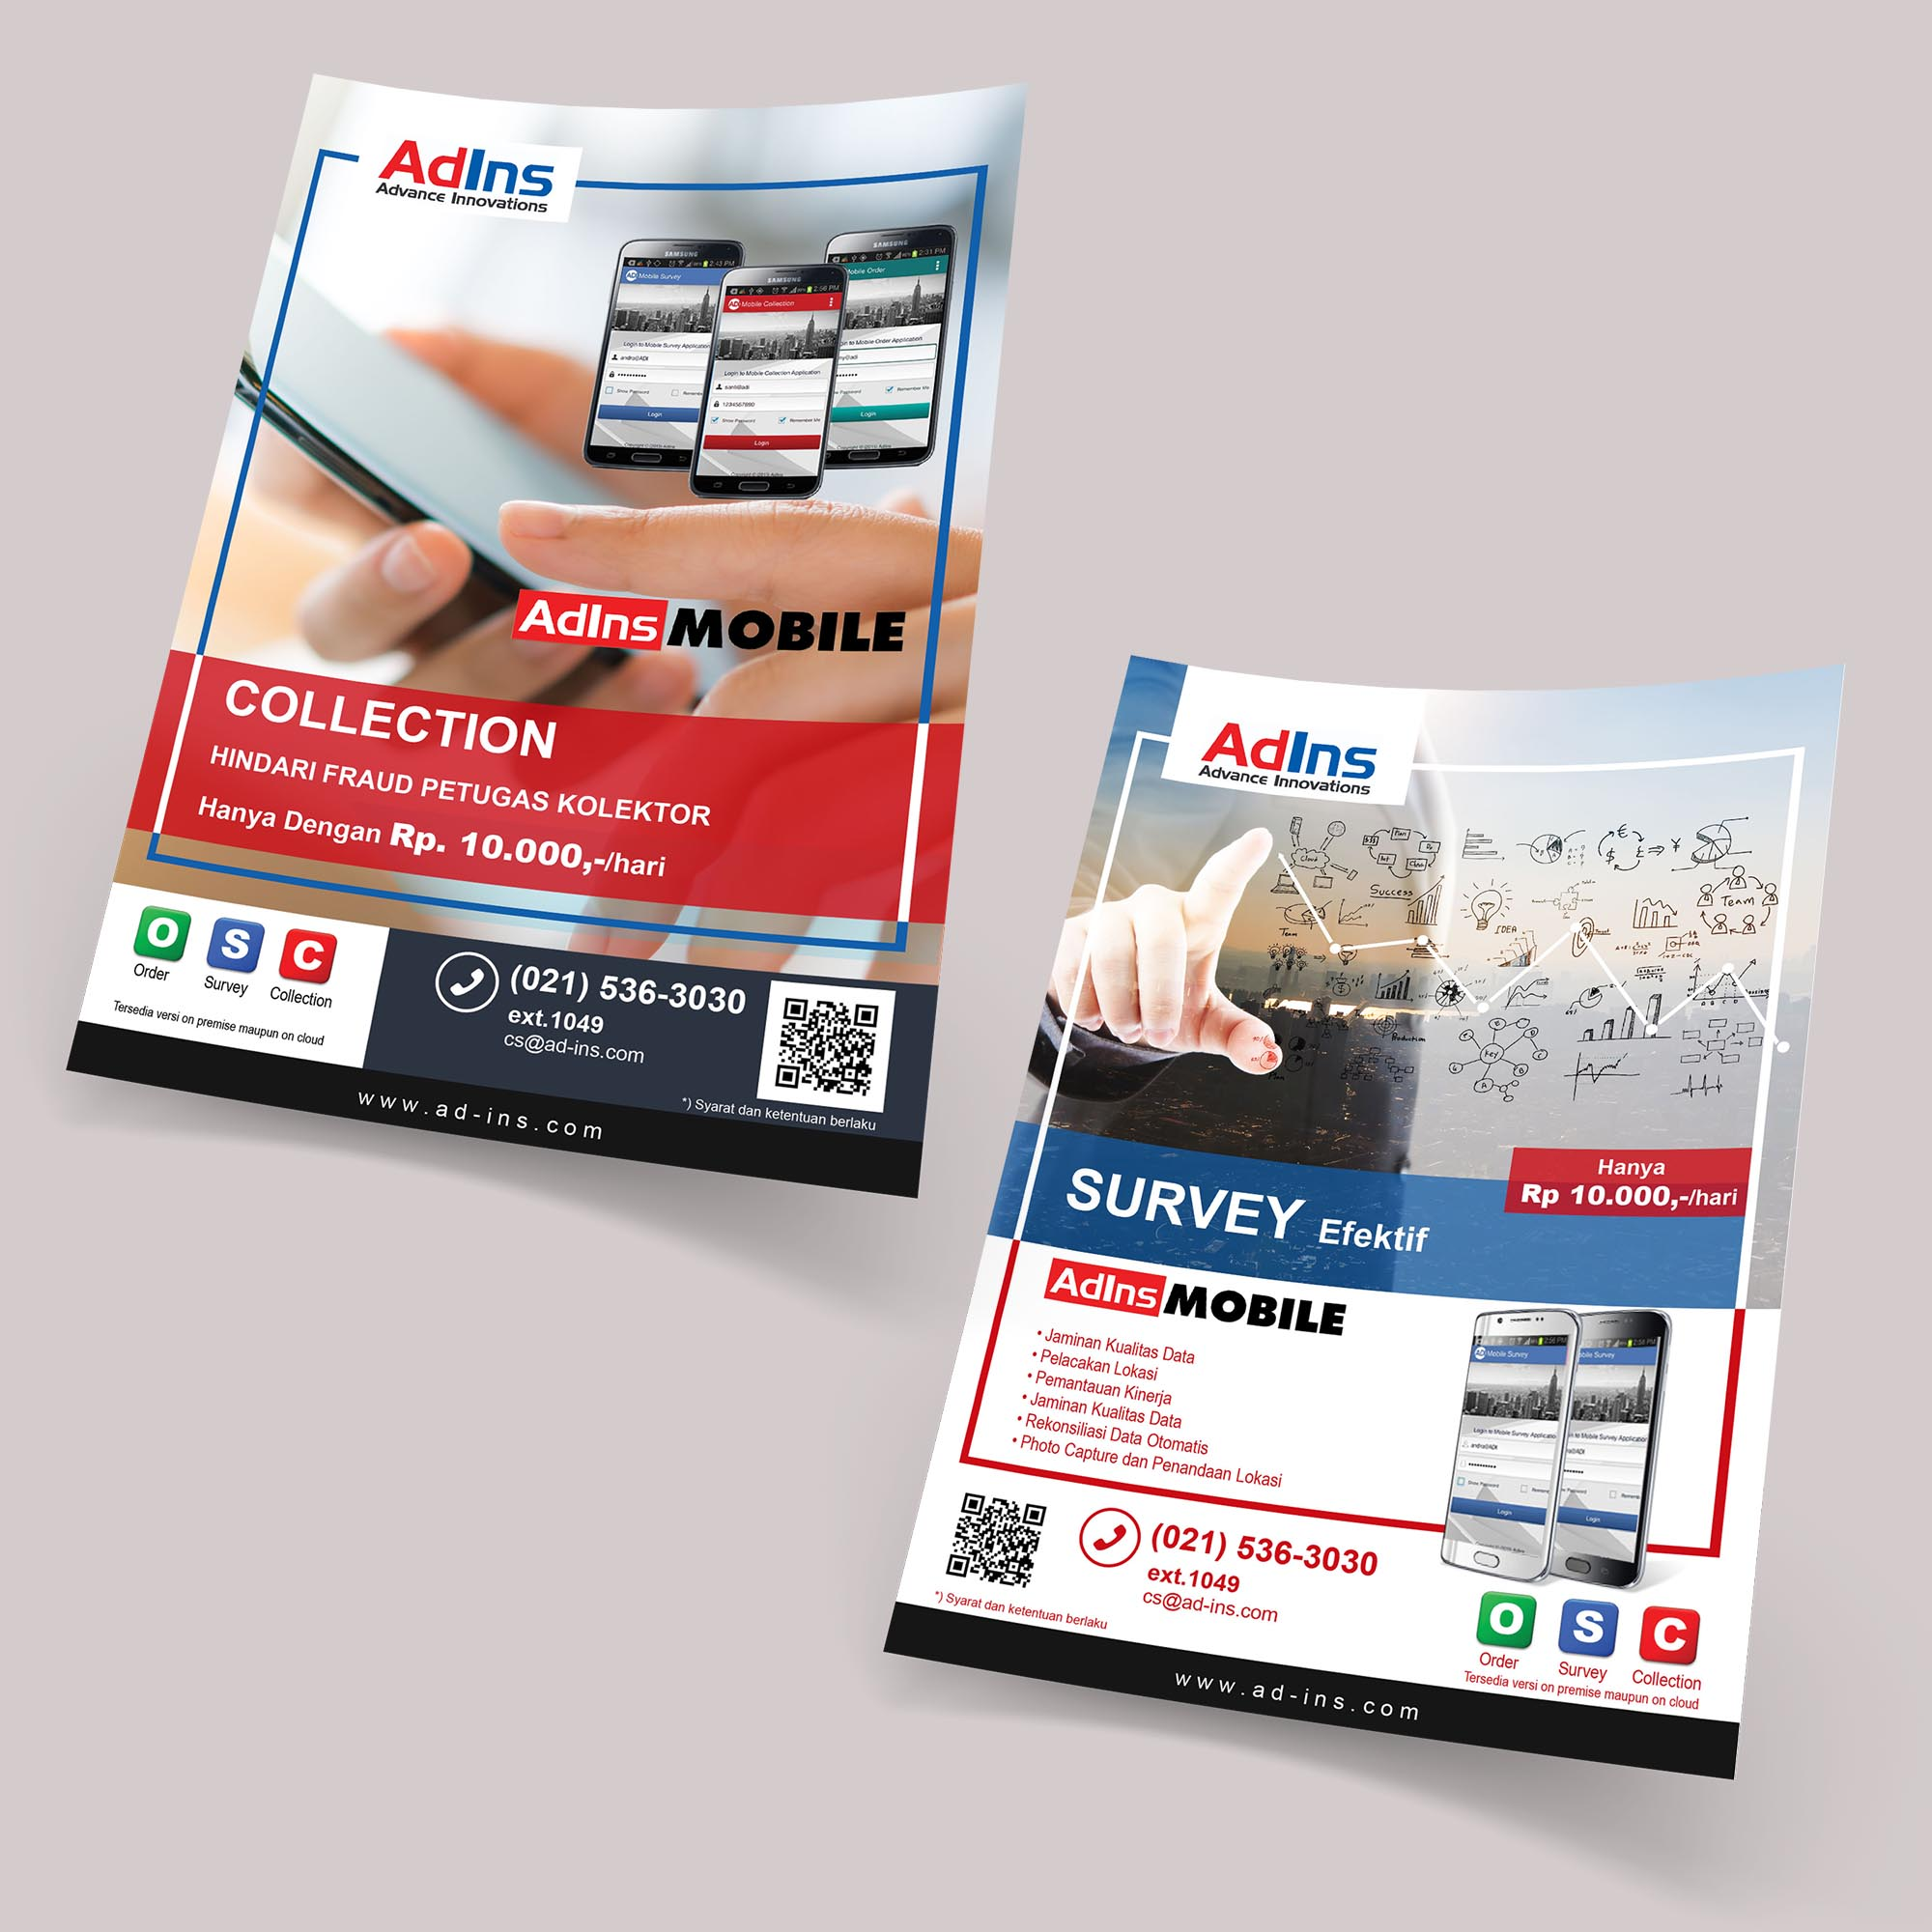 Advertising Flyer Design Services for Collection and Order Mobile Applications